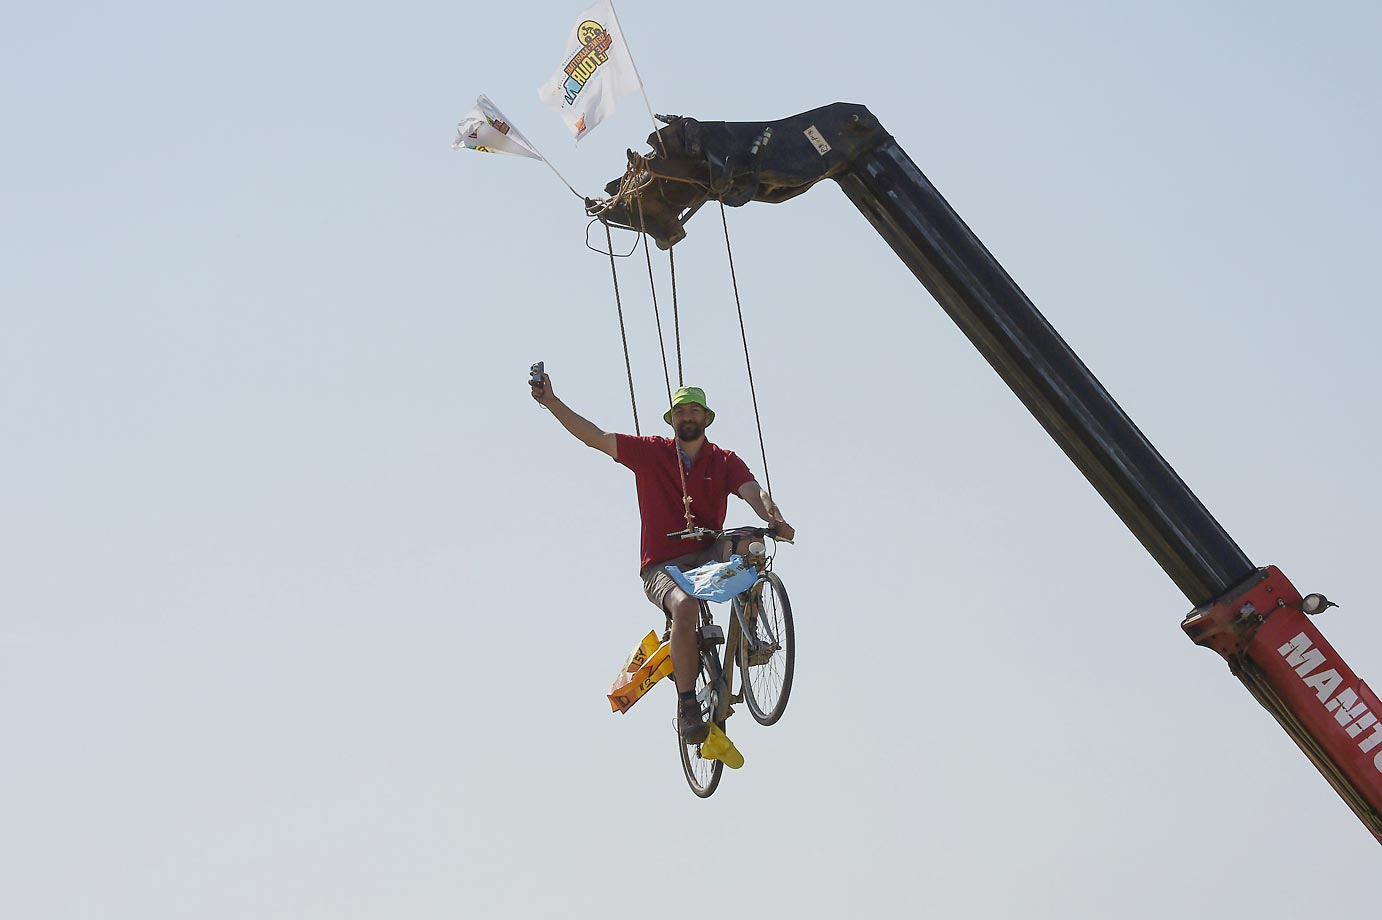 A Tour de France fan is suspended from a crane during the sixth stage of the race.